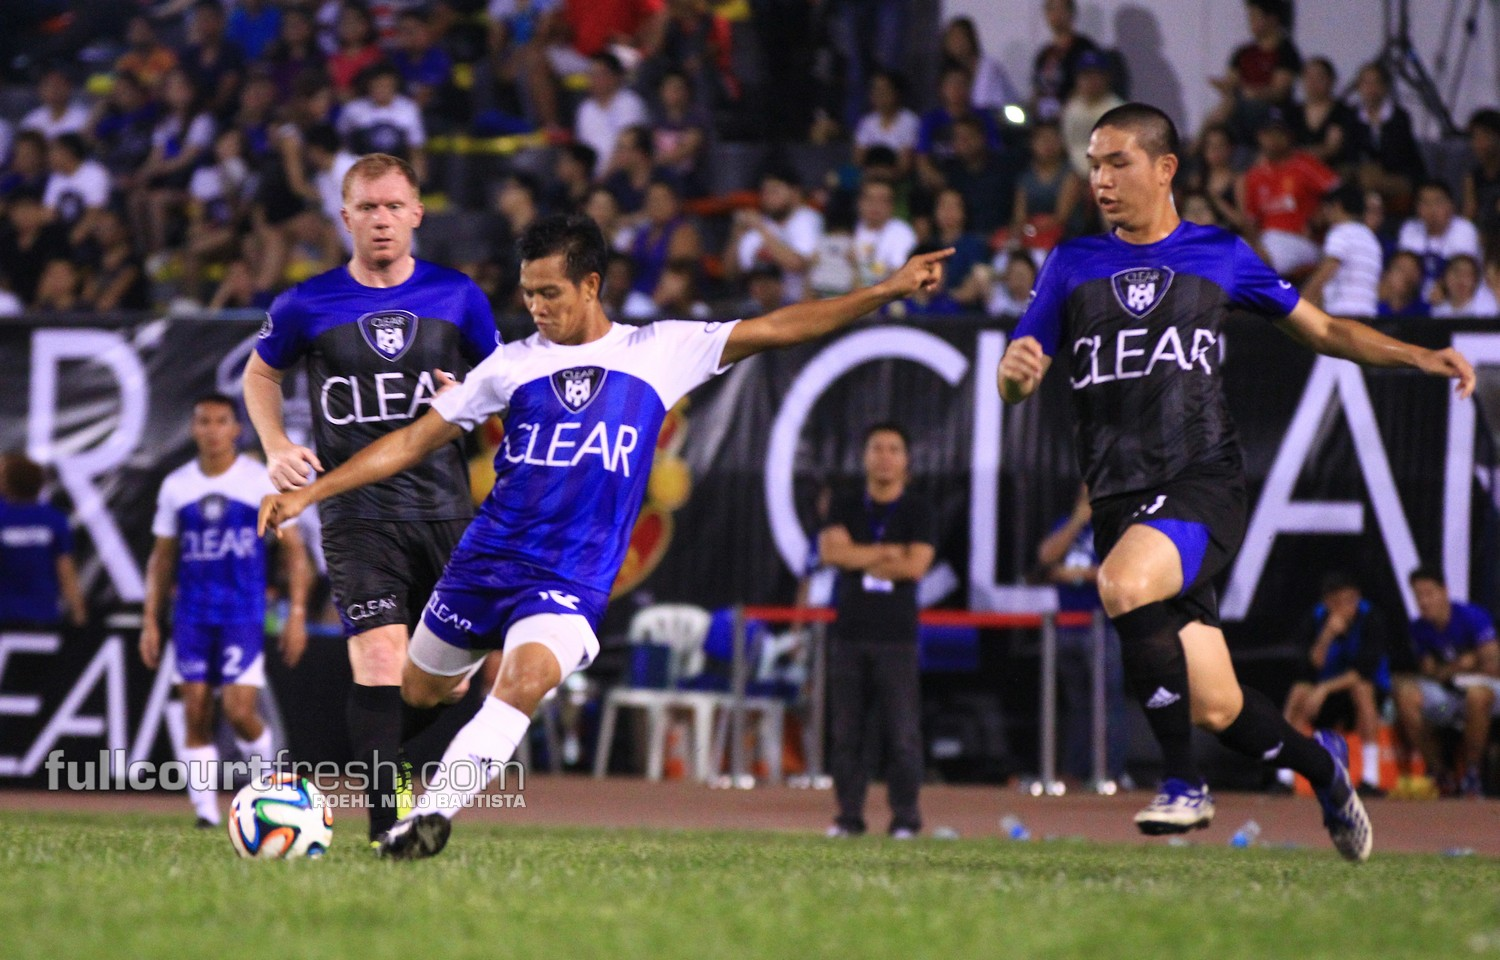 CLEAR-dream-match-3-younghusband (48)